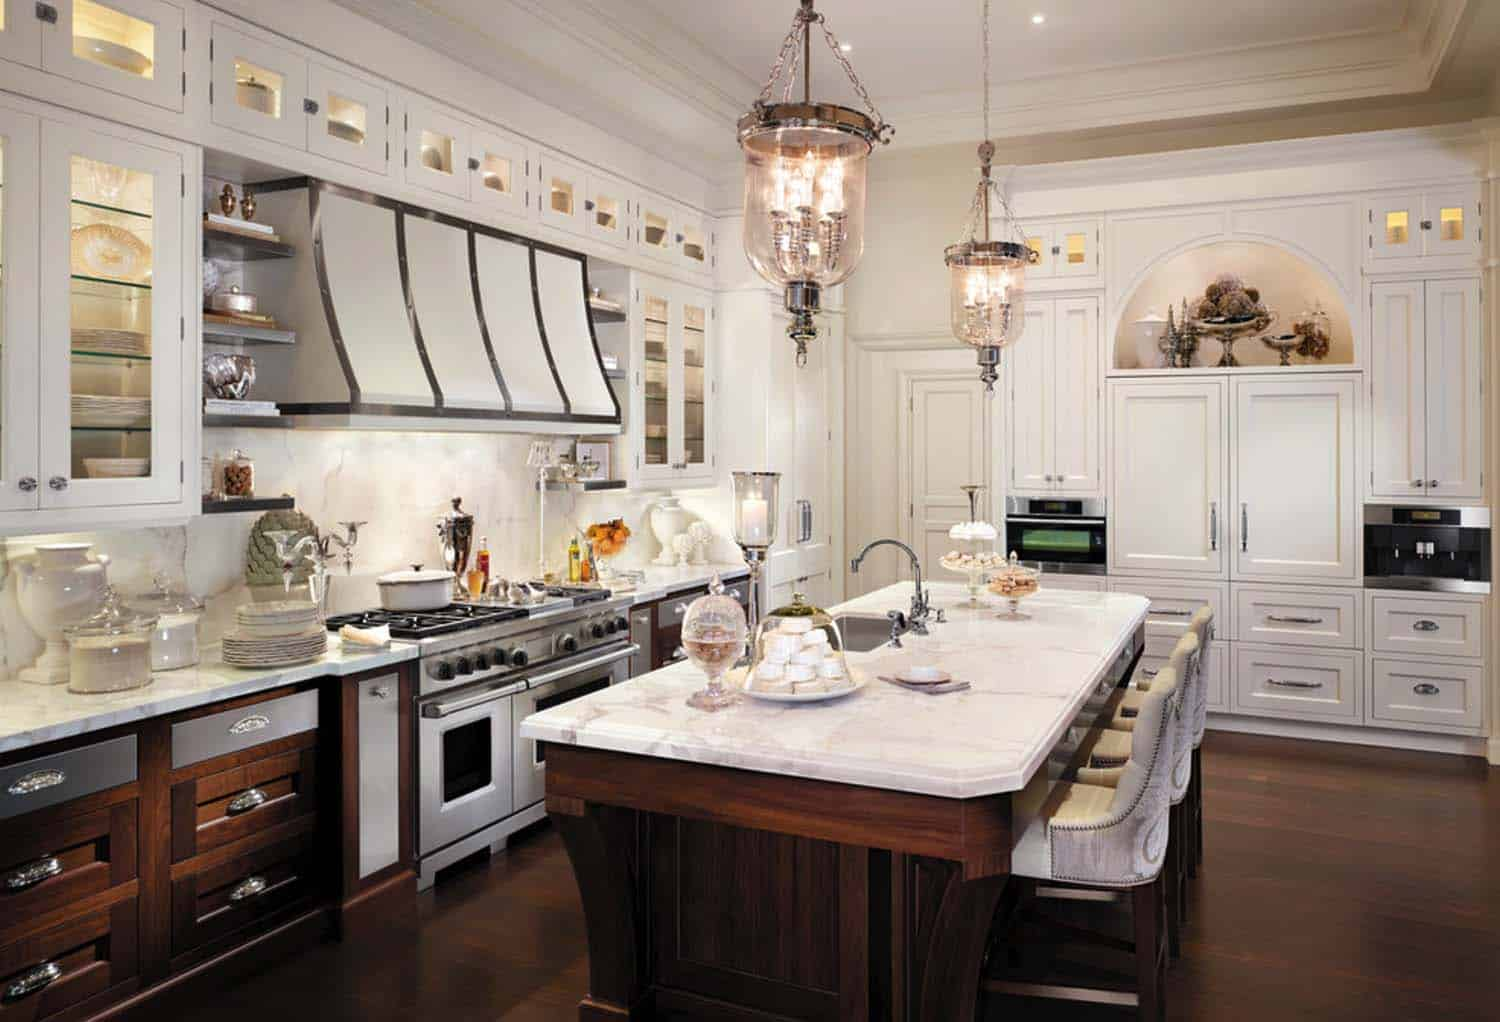 Breathtaking Carrara Marble Kitchens-05-1 Kindesign